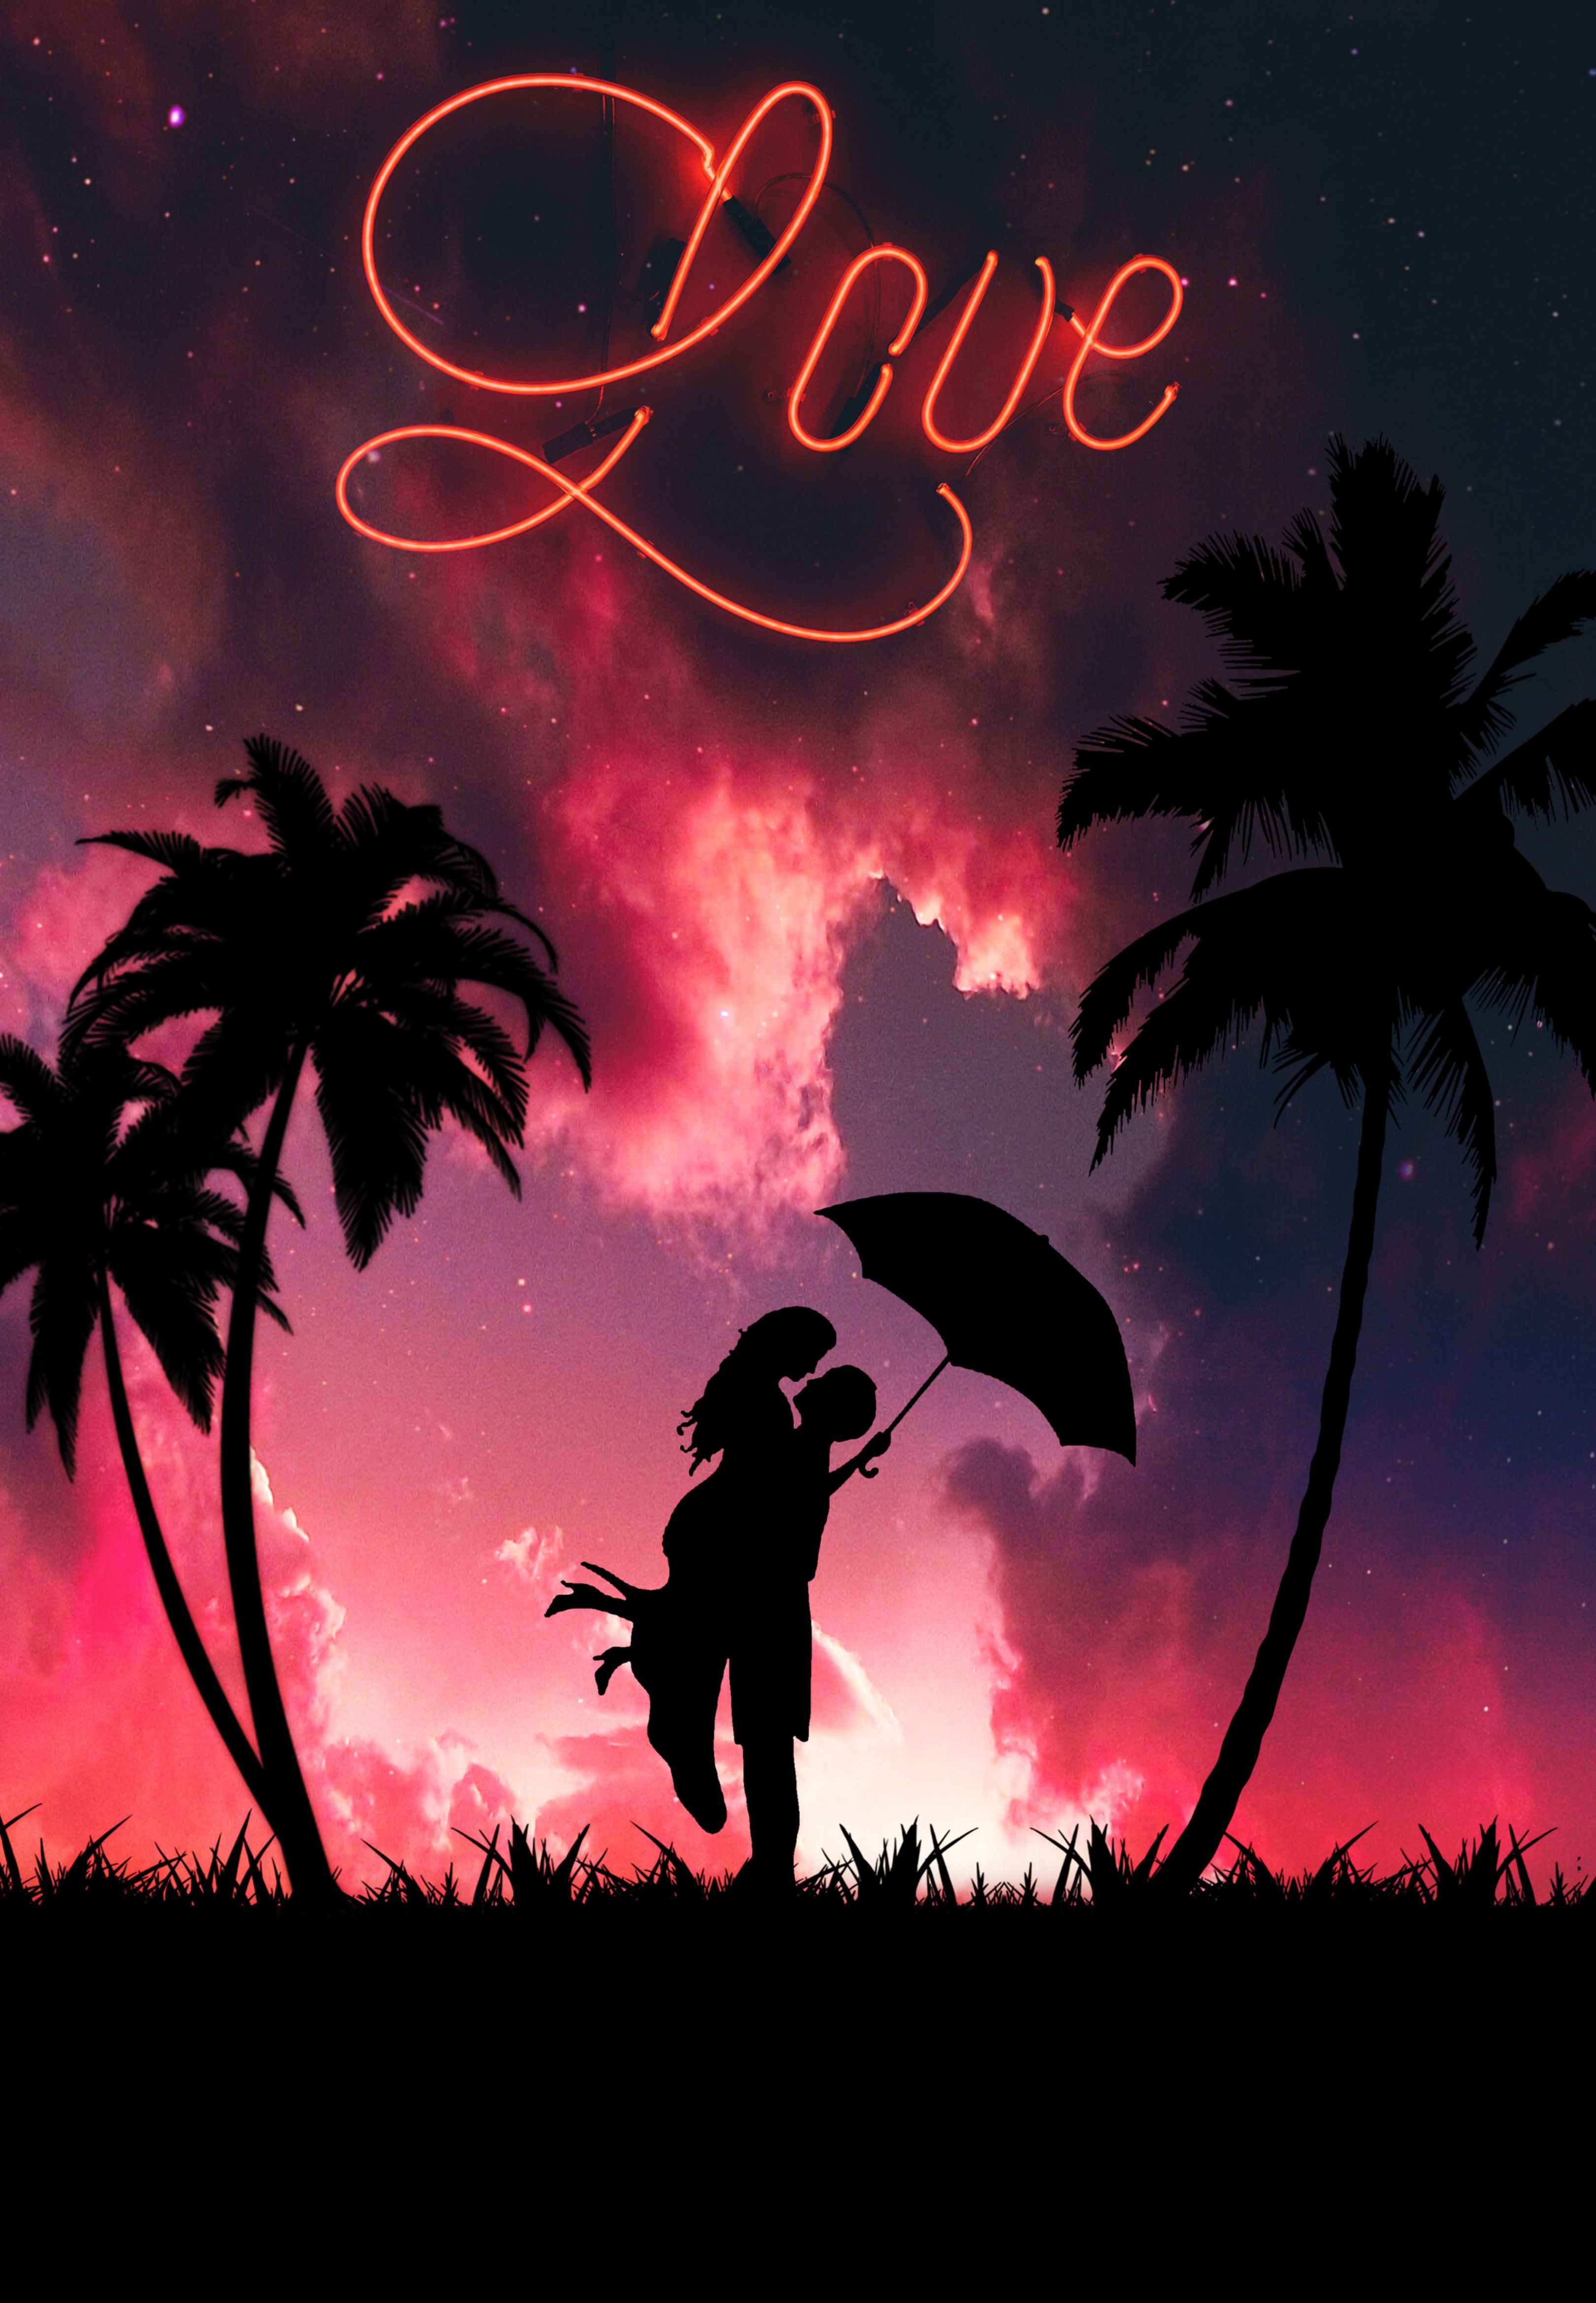 Best Love wallpapers for phone screen